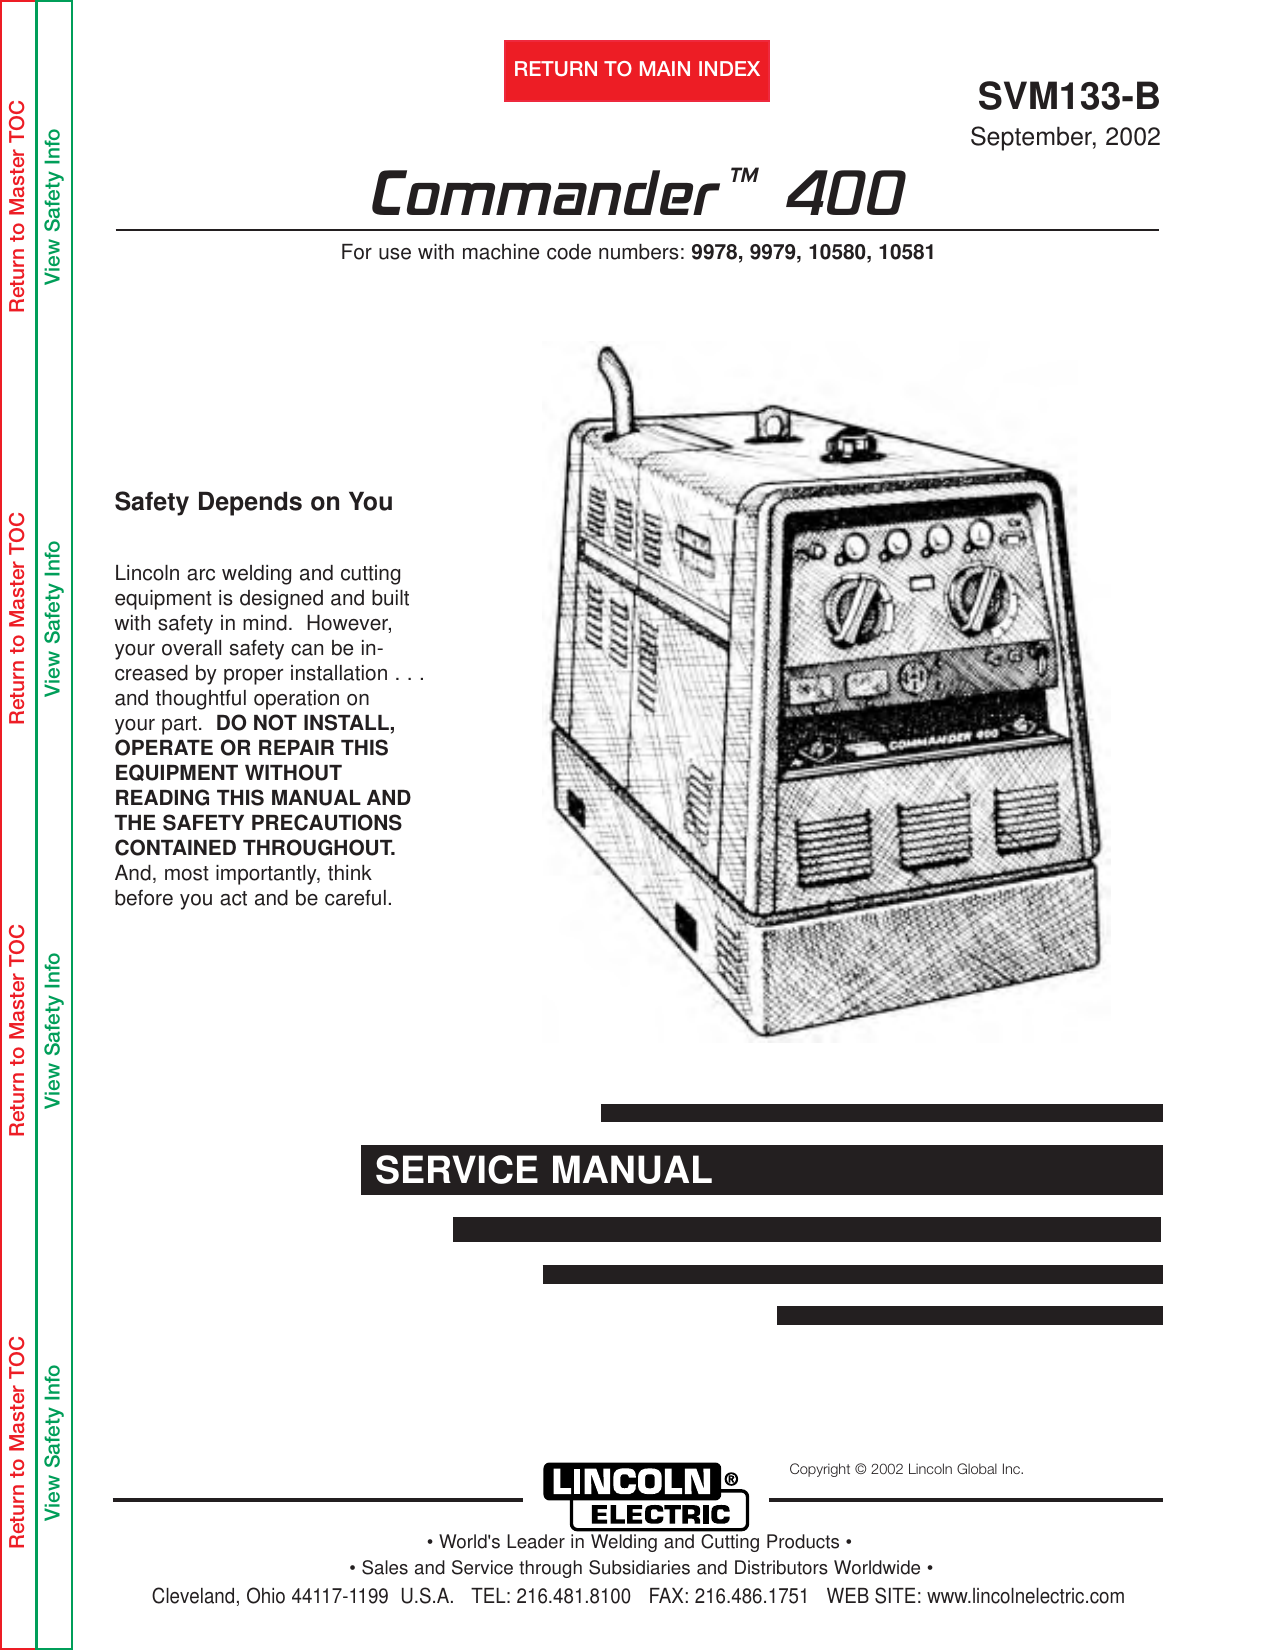 lincoln 400as 50 wiring diagram lincoln electric commander 400 svm133 b users manual svm133b  lincoln electric commander 400 svm133 b